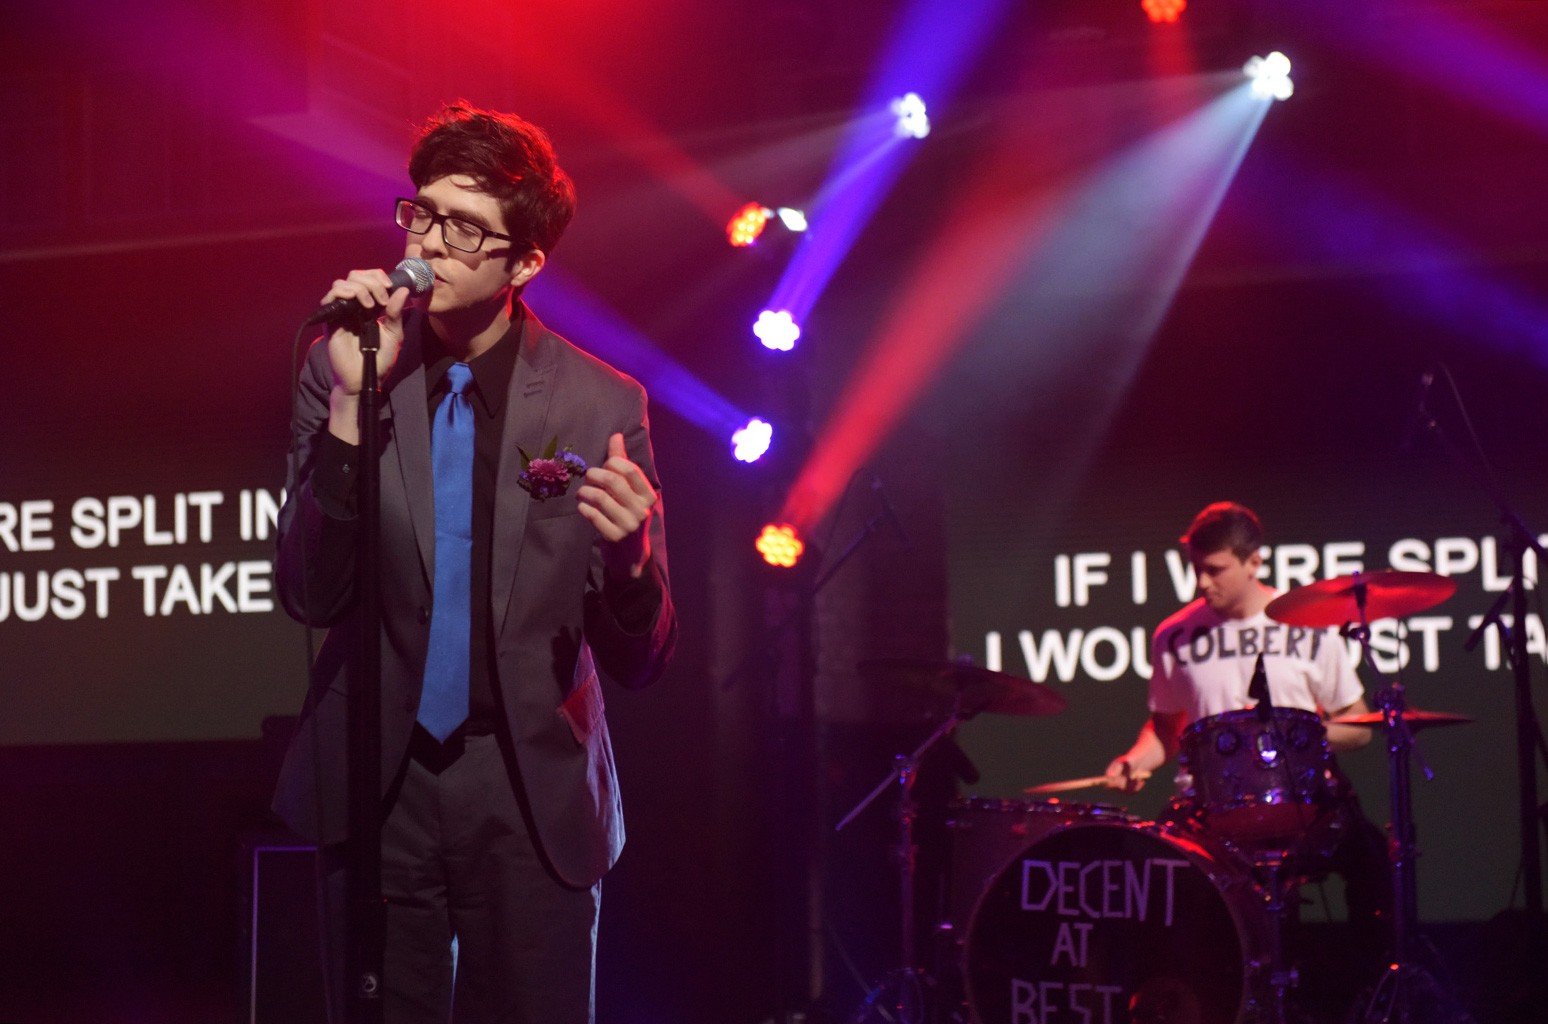 The Late Show With Stephen Colbert: With guests Car Seat Headrest during Thursday's 8/25/16 taping in New York.